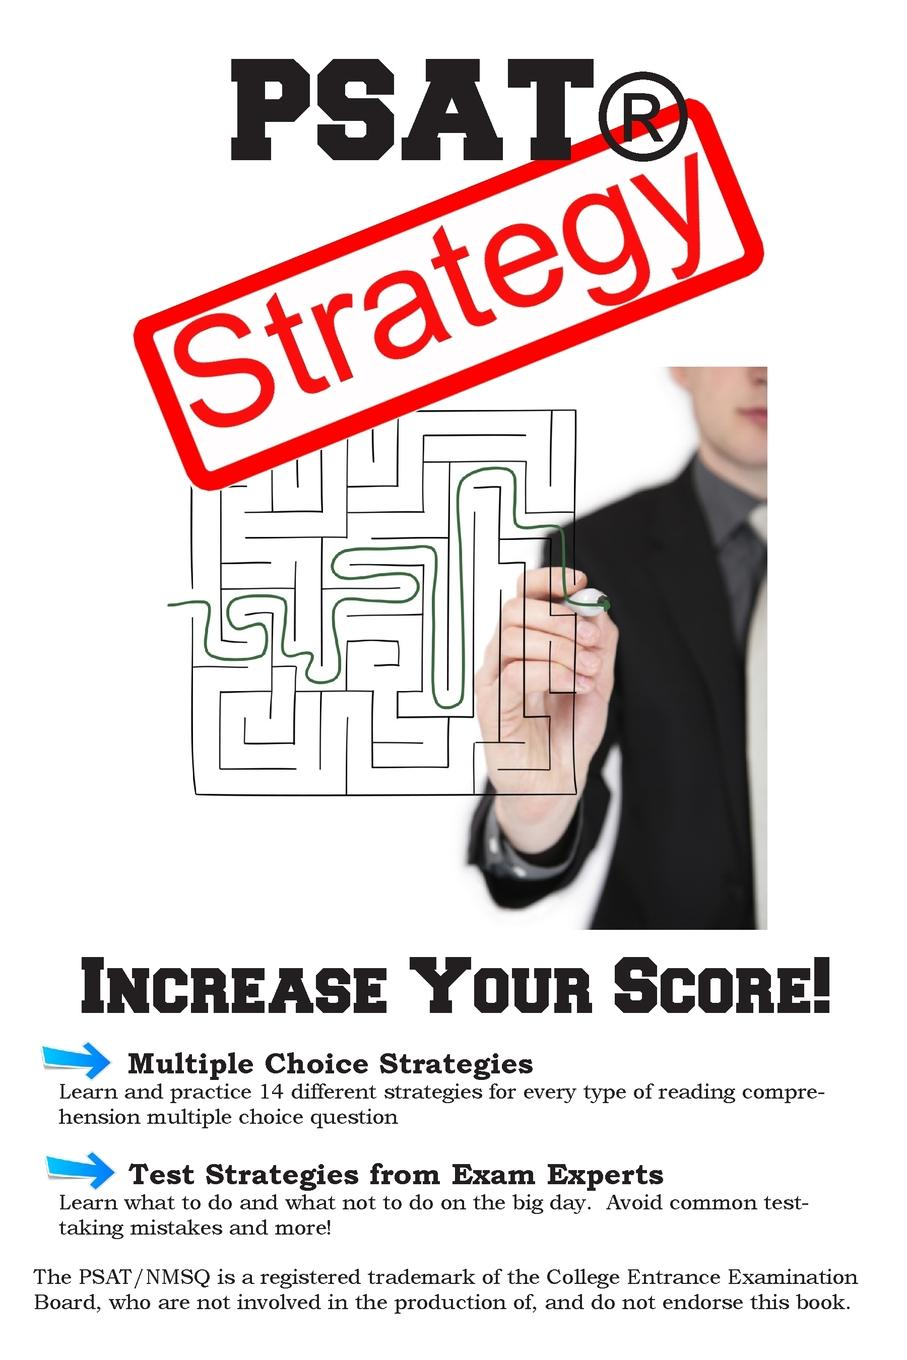 PSAT Test Strategy. Winning Multiple Choice Strategies for the PSAT. Test